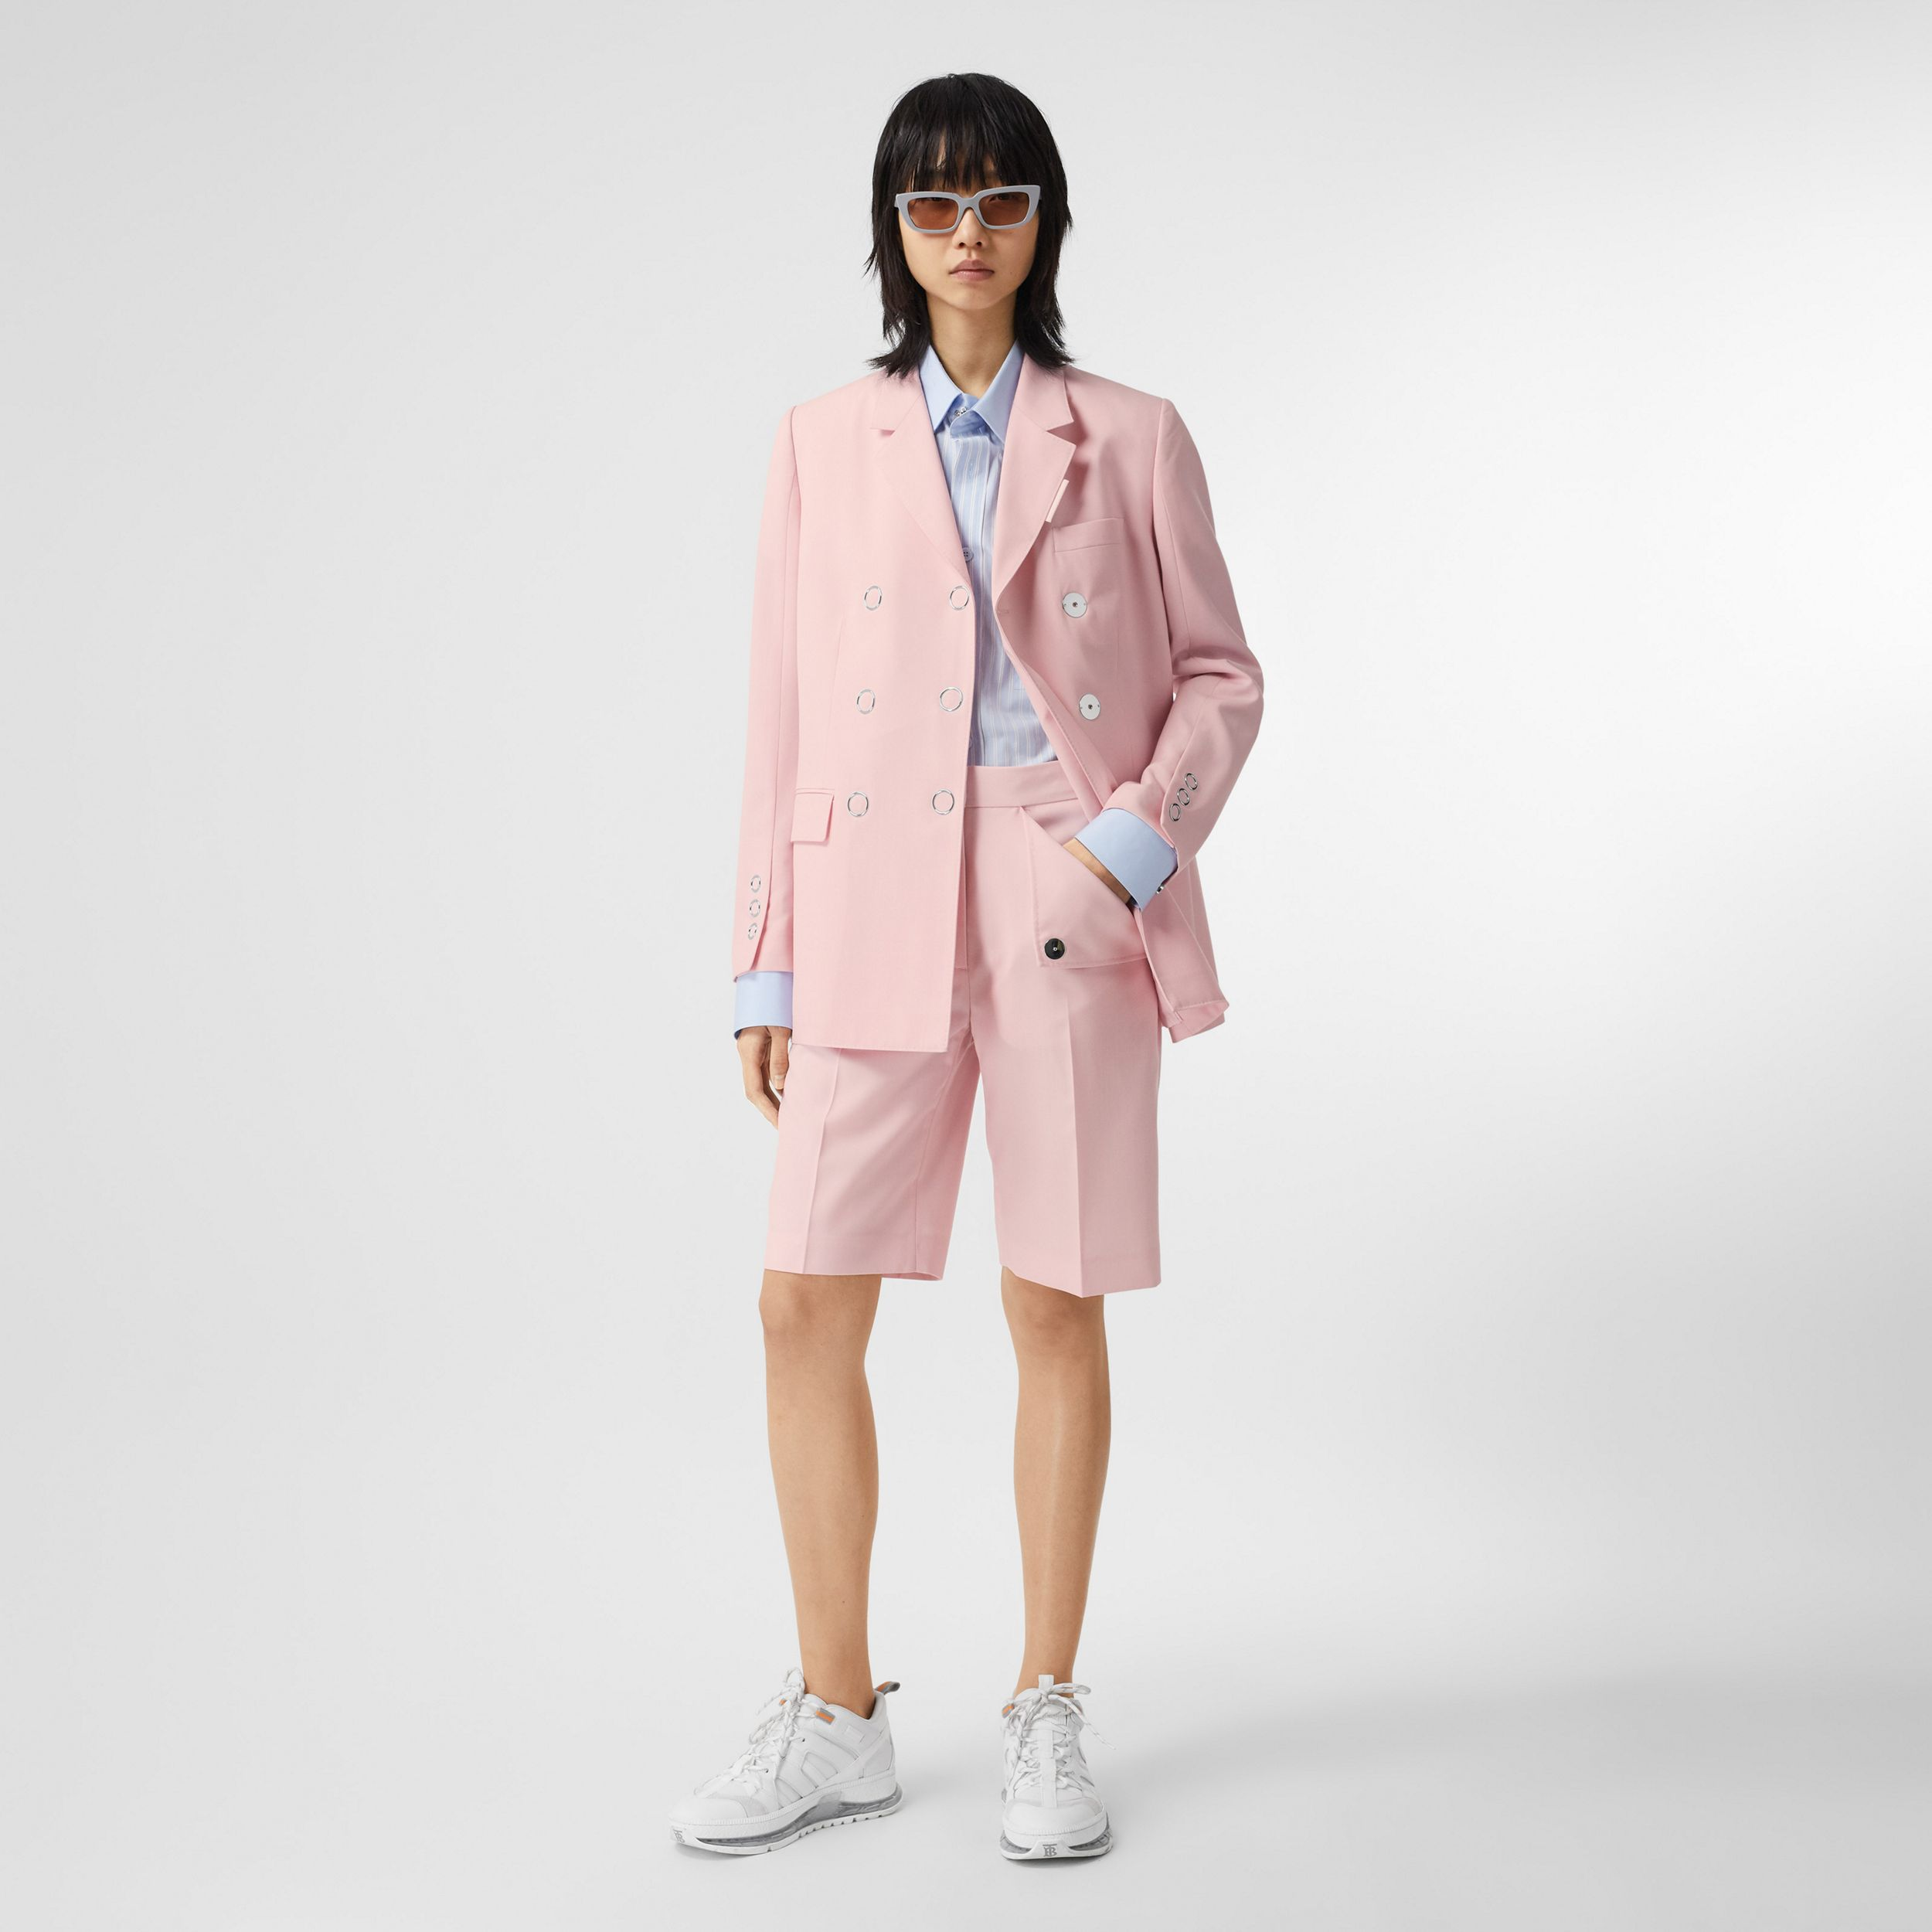 Tumbled Wool Double-breasted Blazer in Soft Pink | Burberry - 1